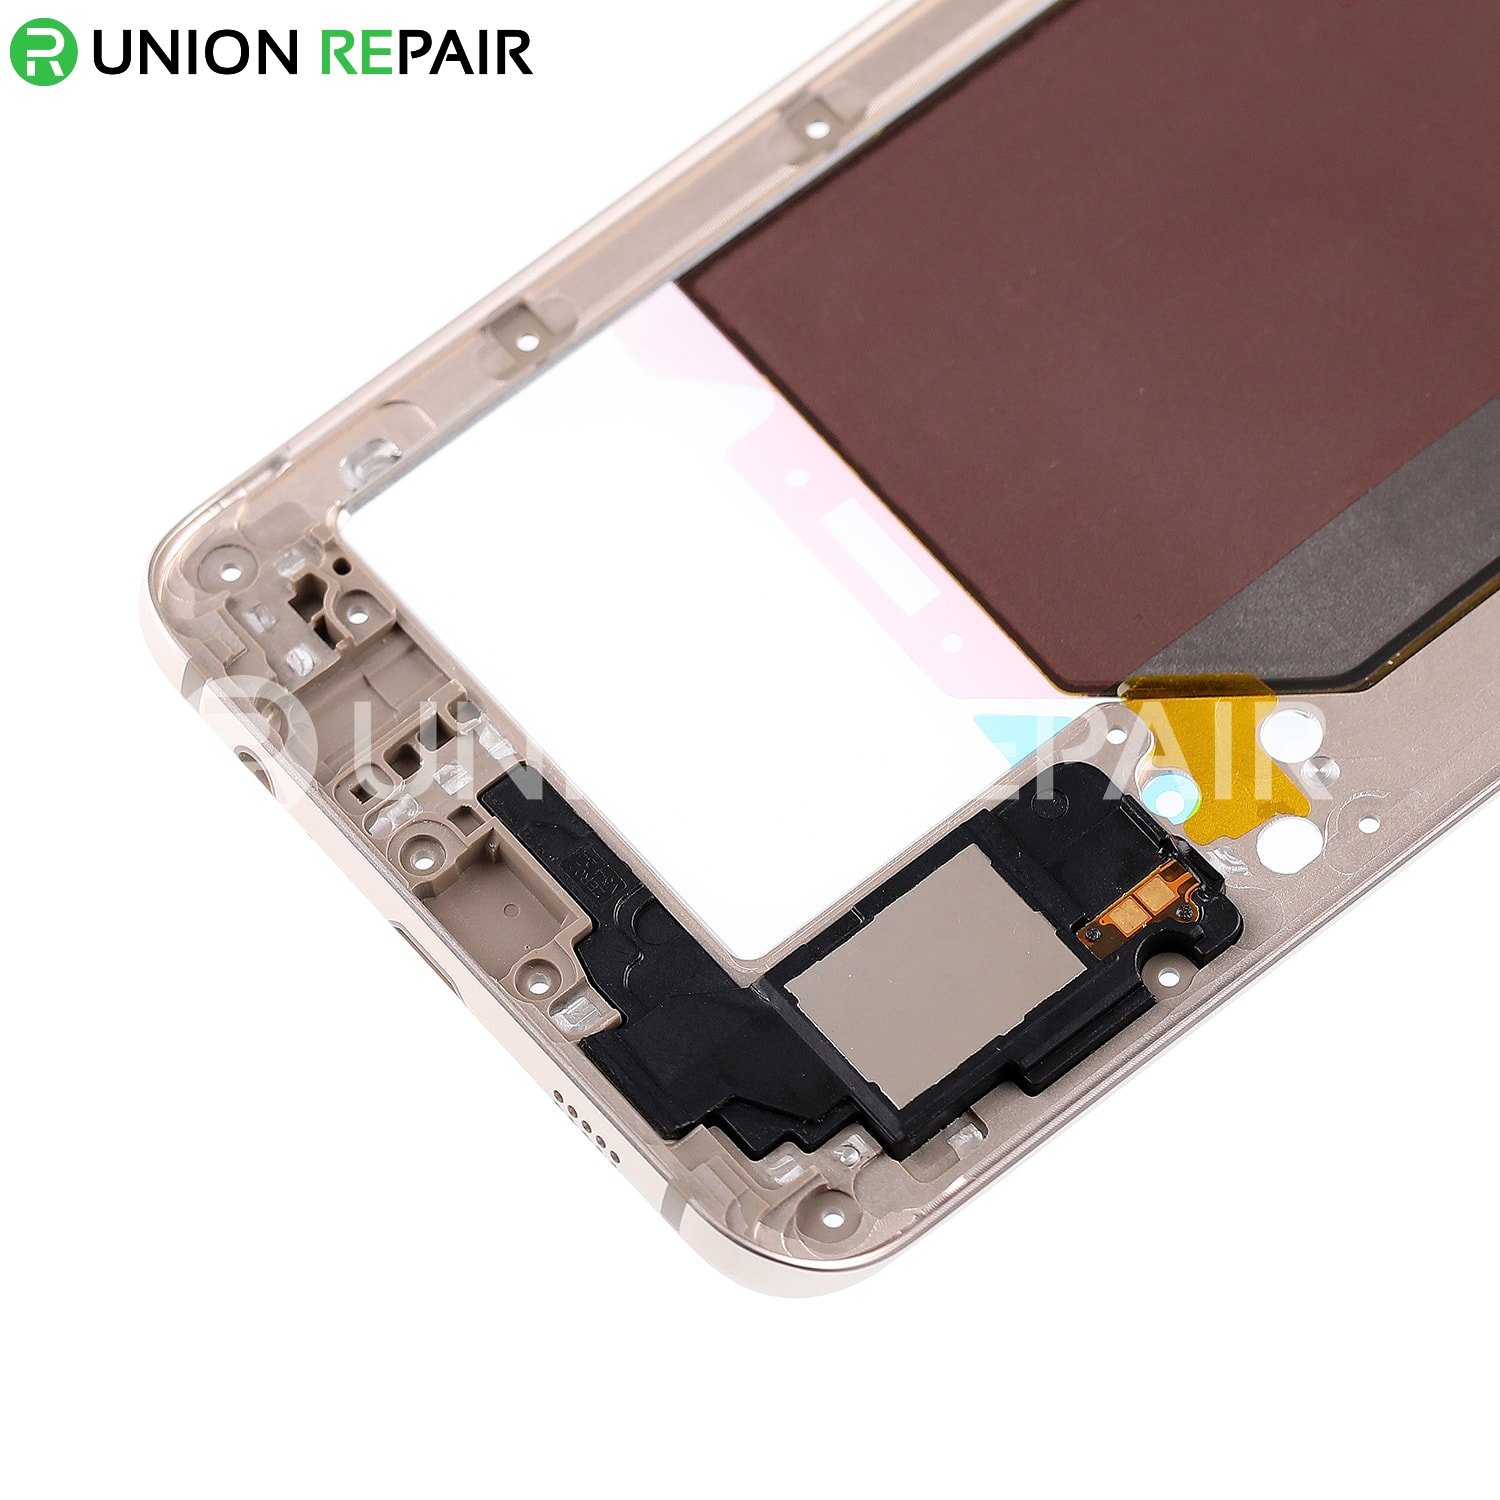 Replacement for Samsung Galaxy S6 Edge Plus SM G928F Rear Housing Assembly Gold